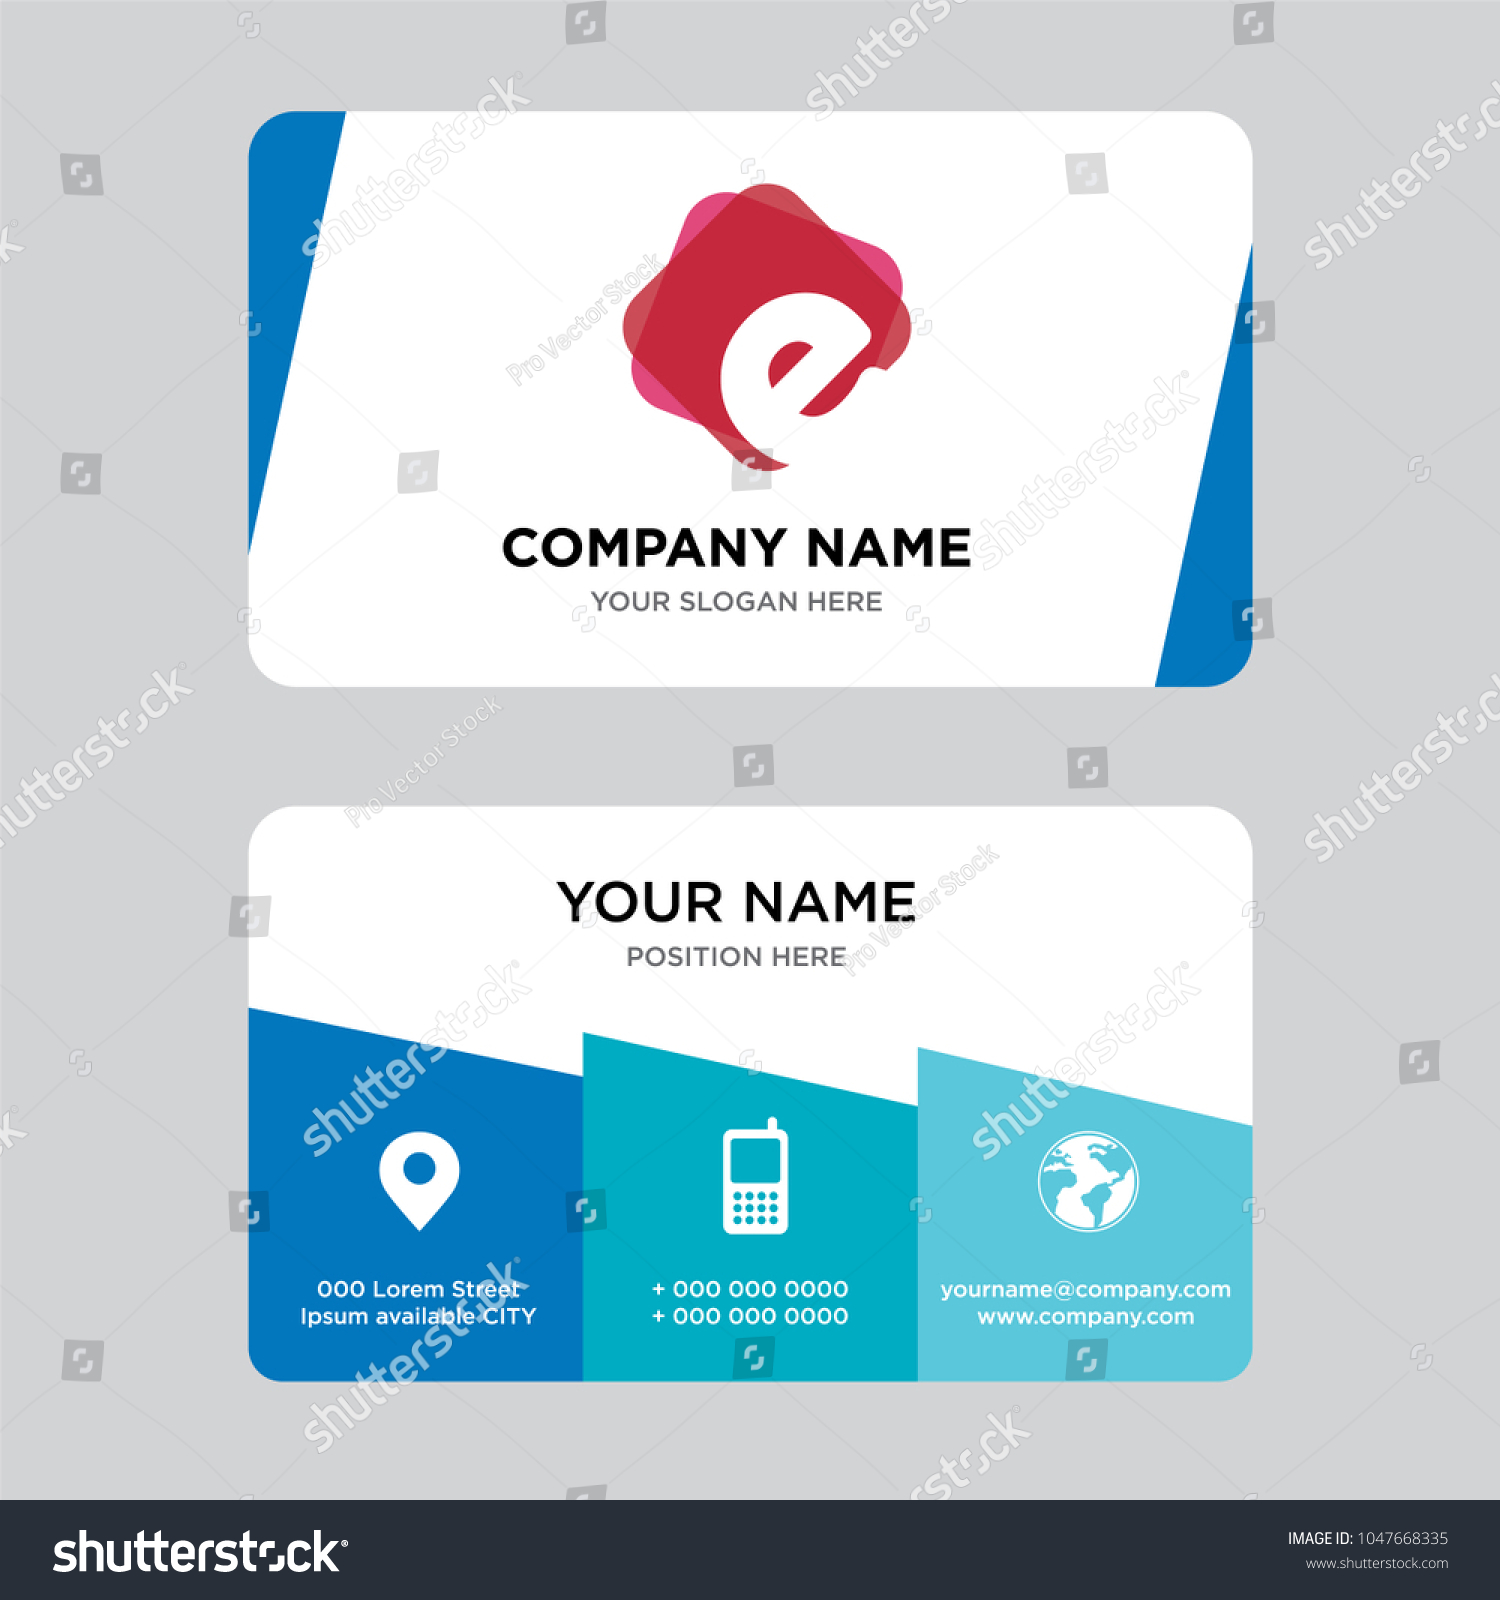 Amway business card 04 amway business cards excellent amway business cards usana choice image card design and card template amway business card template colourmoves